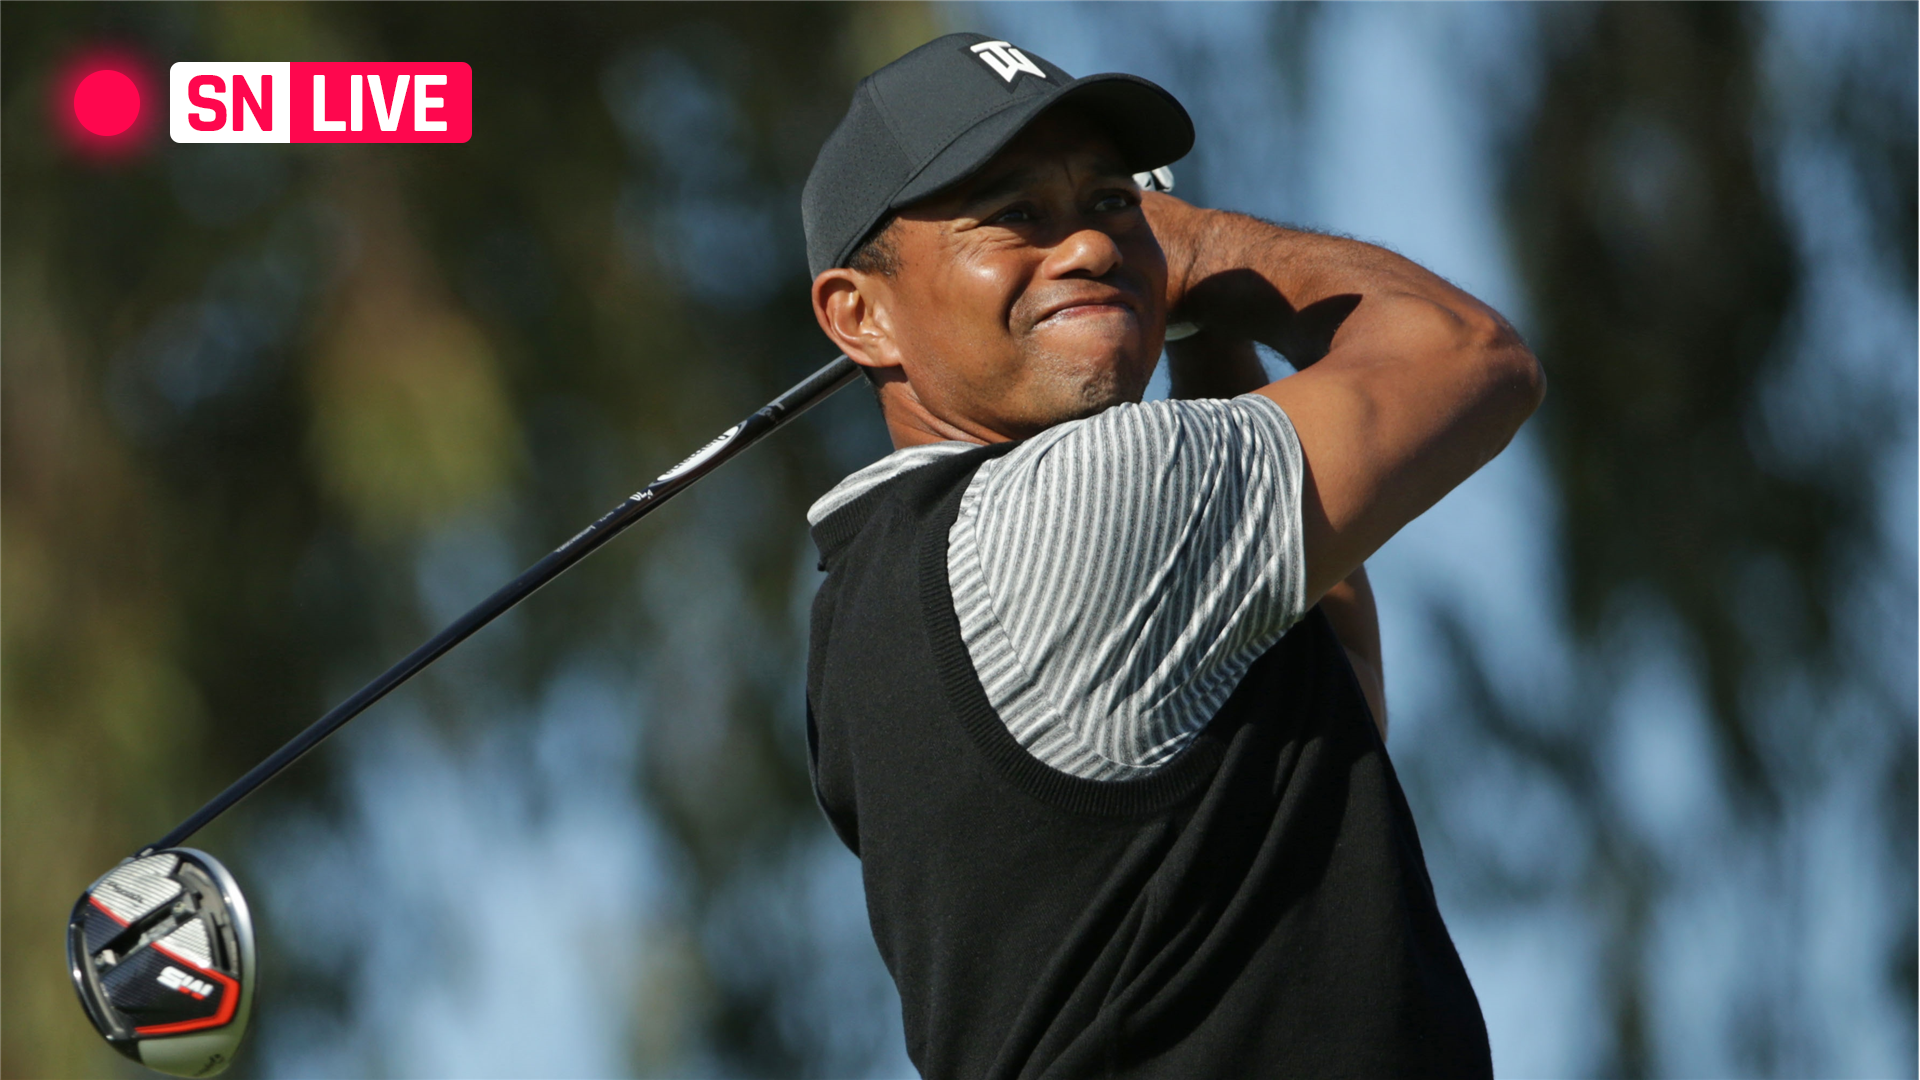 Tiger Woods Just Finished His 2nd Round Of 2019 - Here's His Score